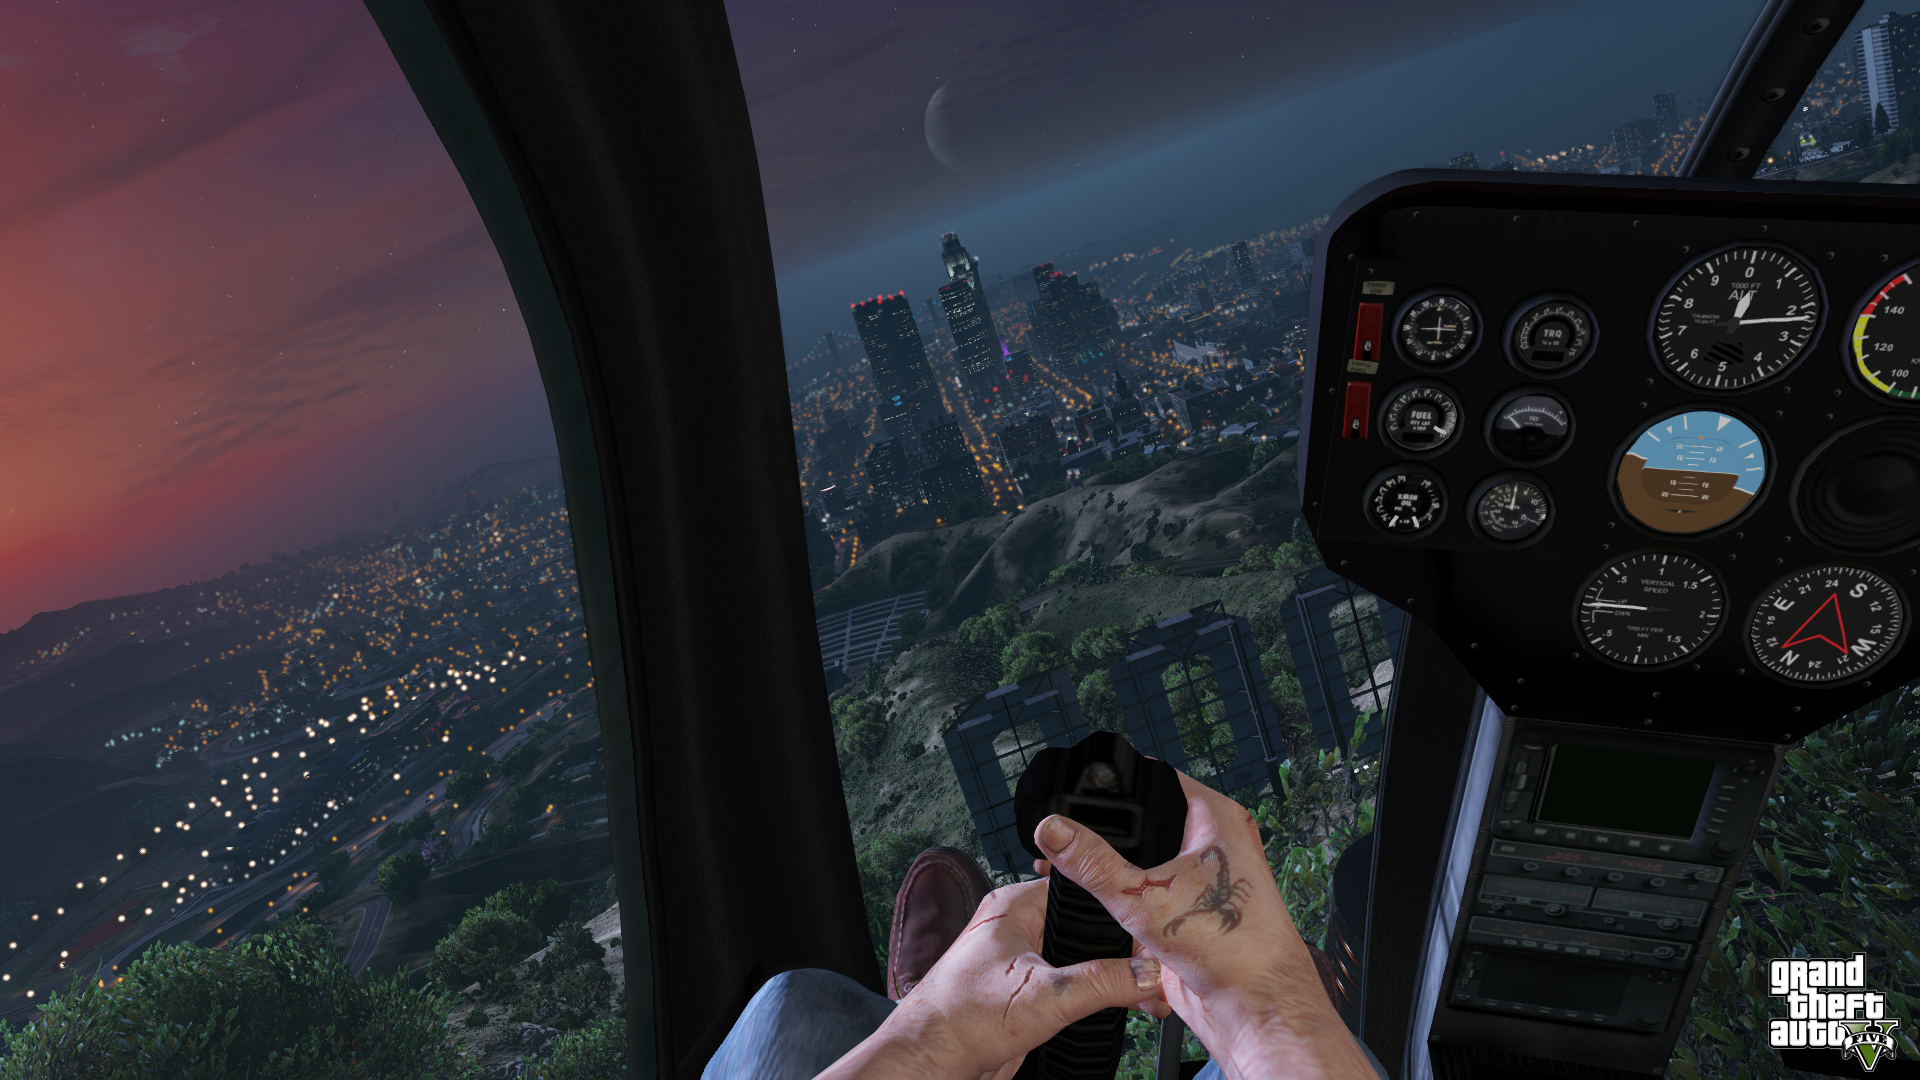 Grand Theft Auto V' in first person is absolutely nuts - The